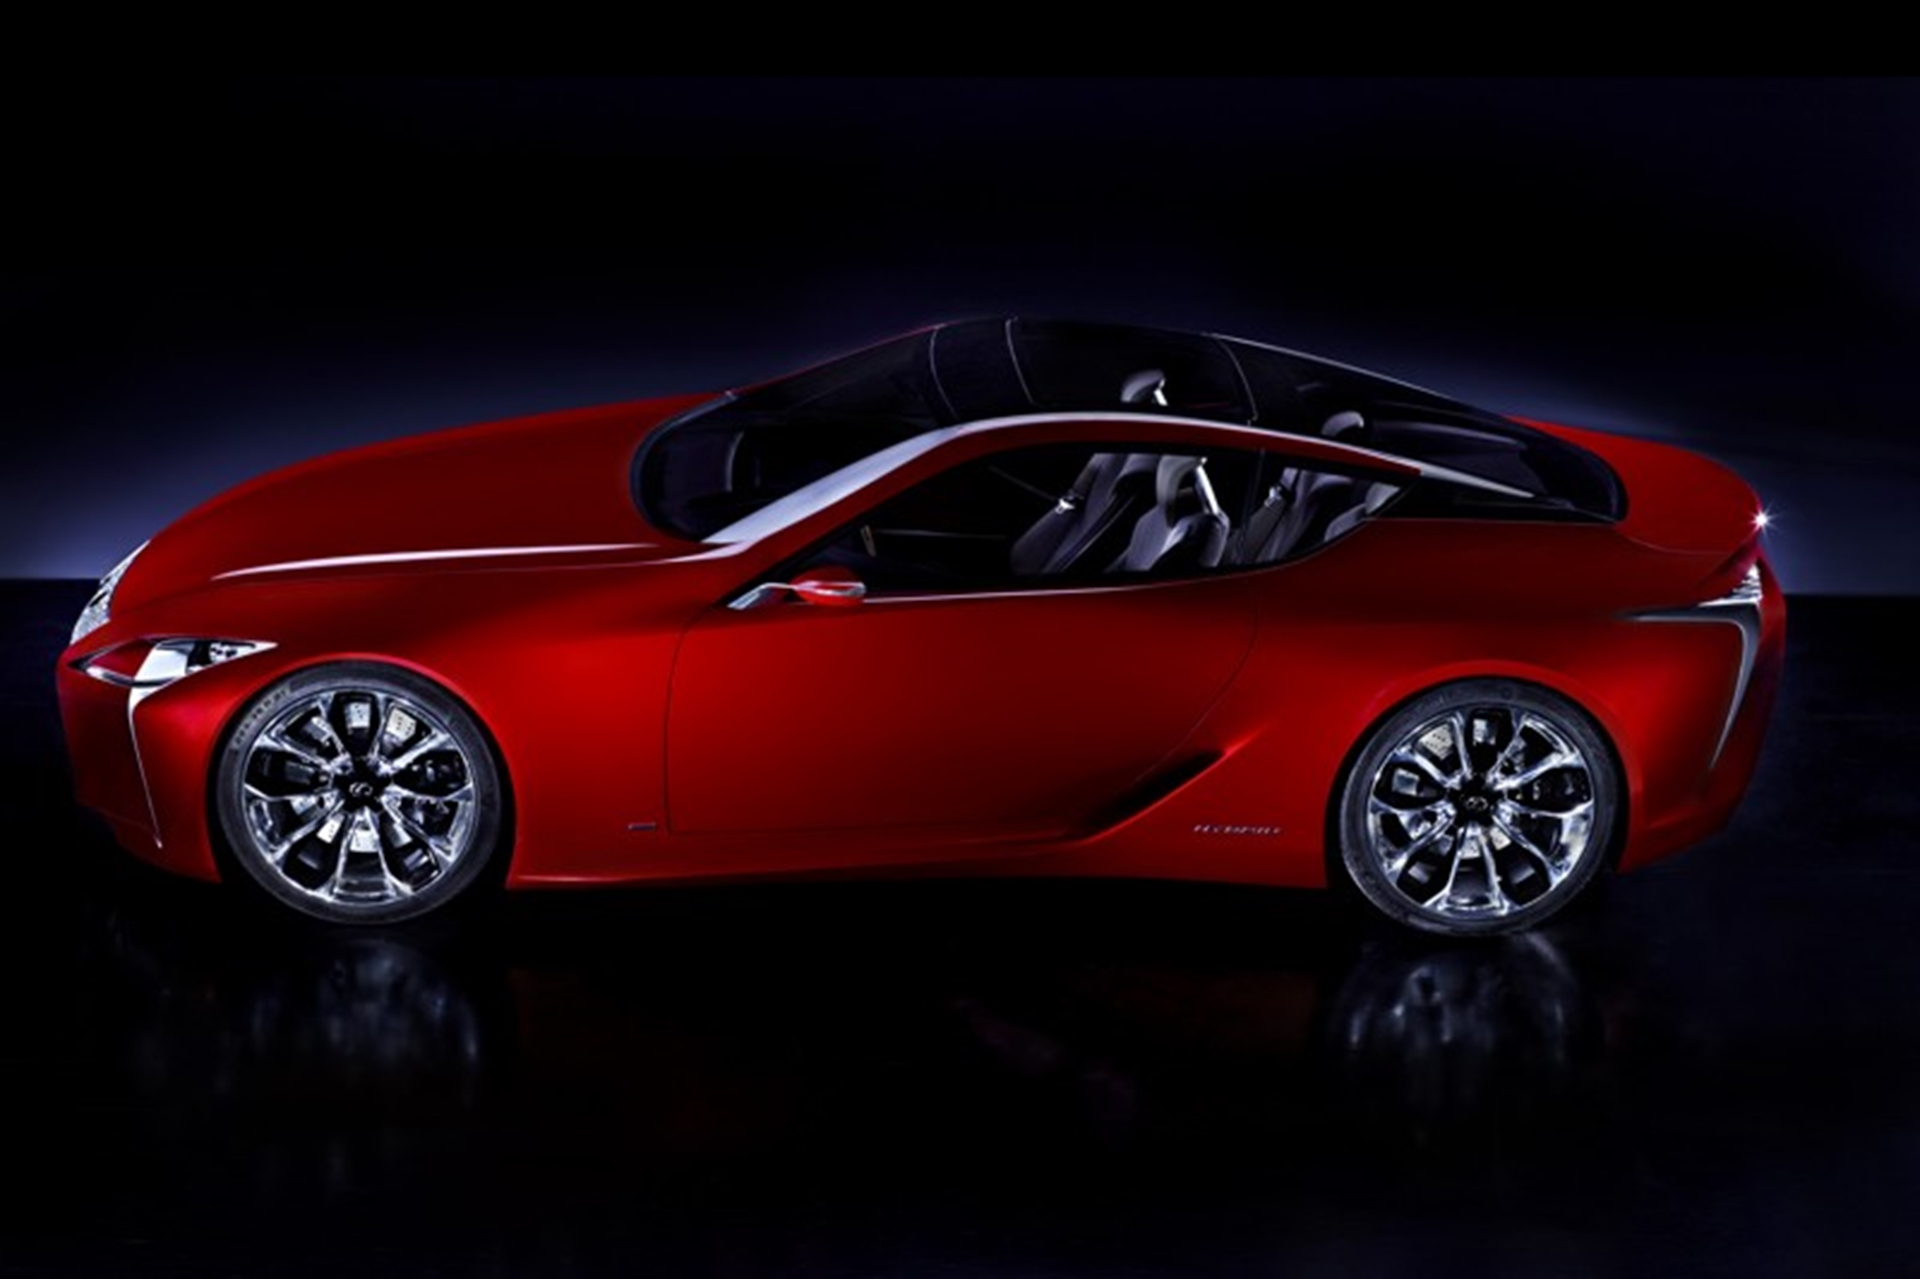 The new LF-LC 2+2 sports coupe concept